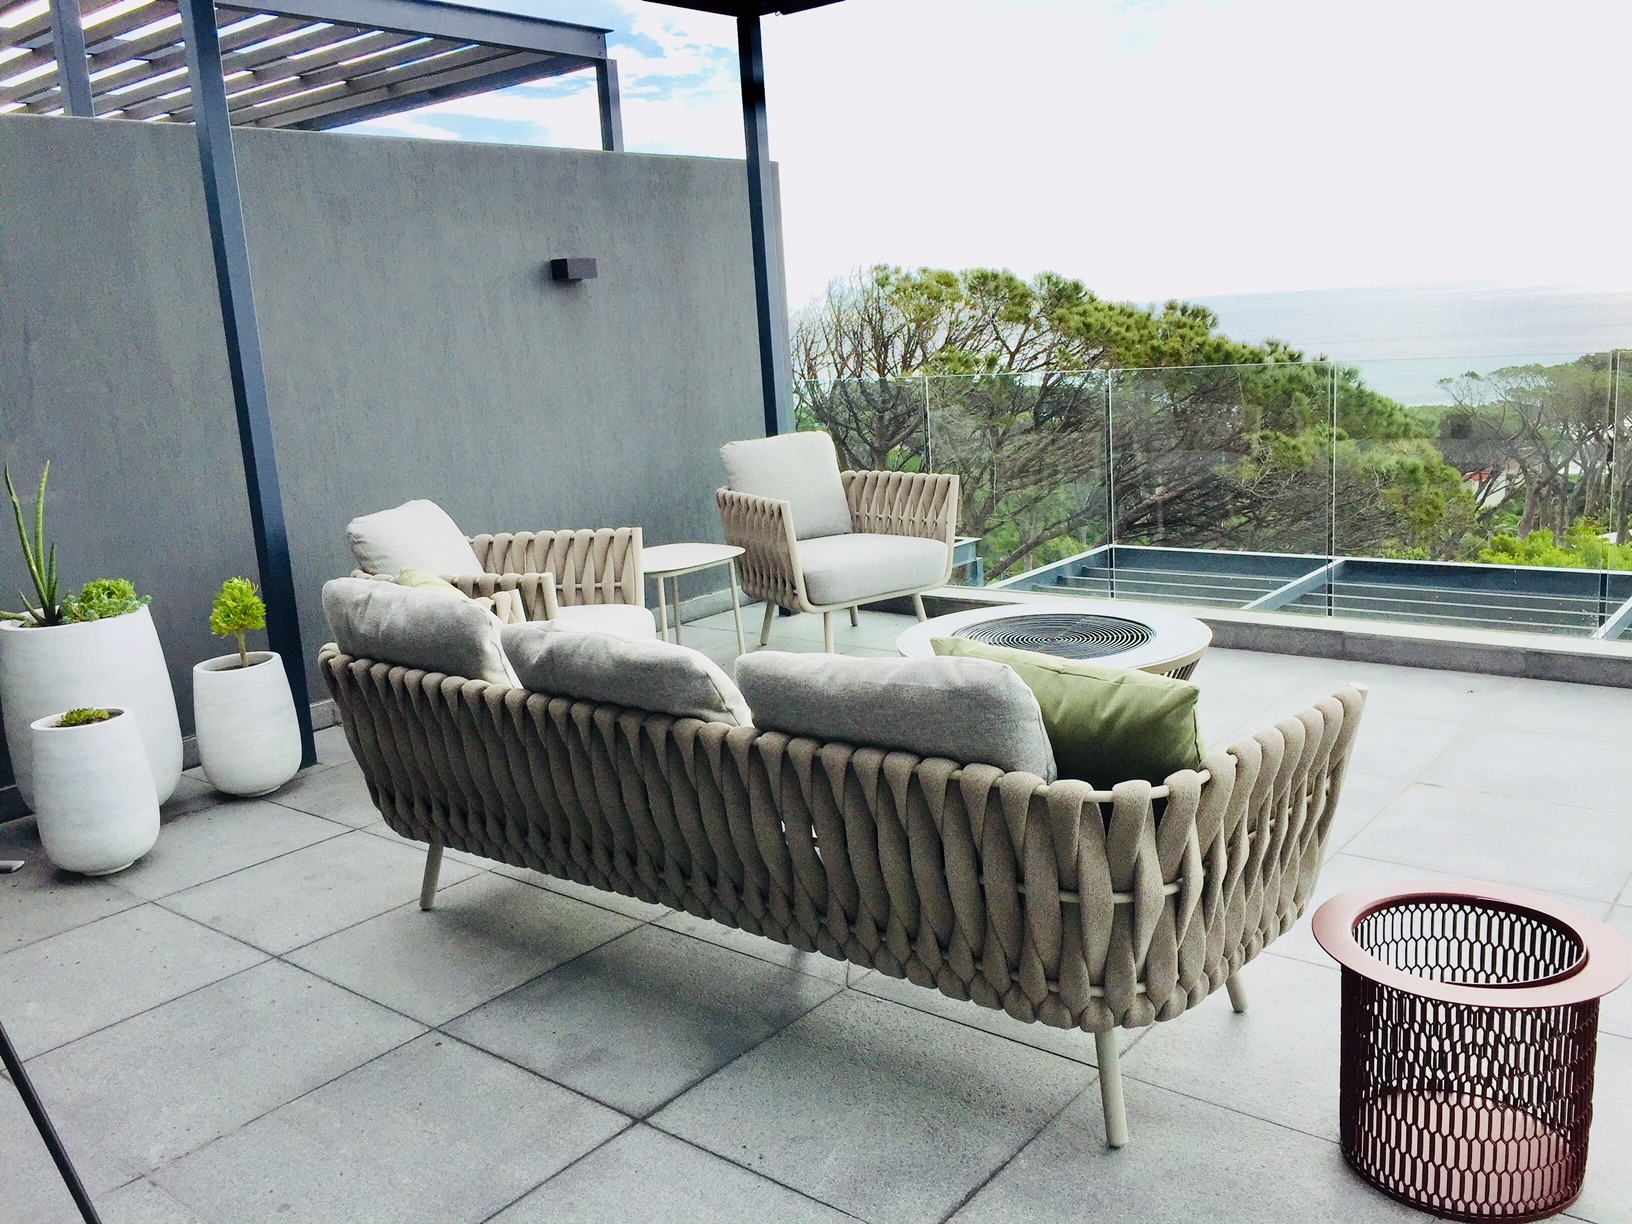 Tosca outdoor sofa by Tribu